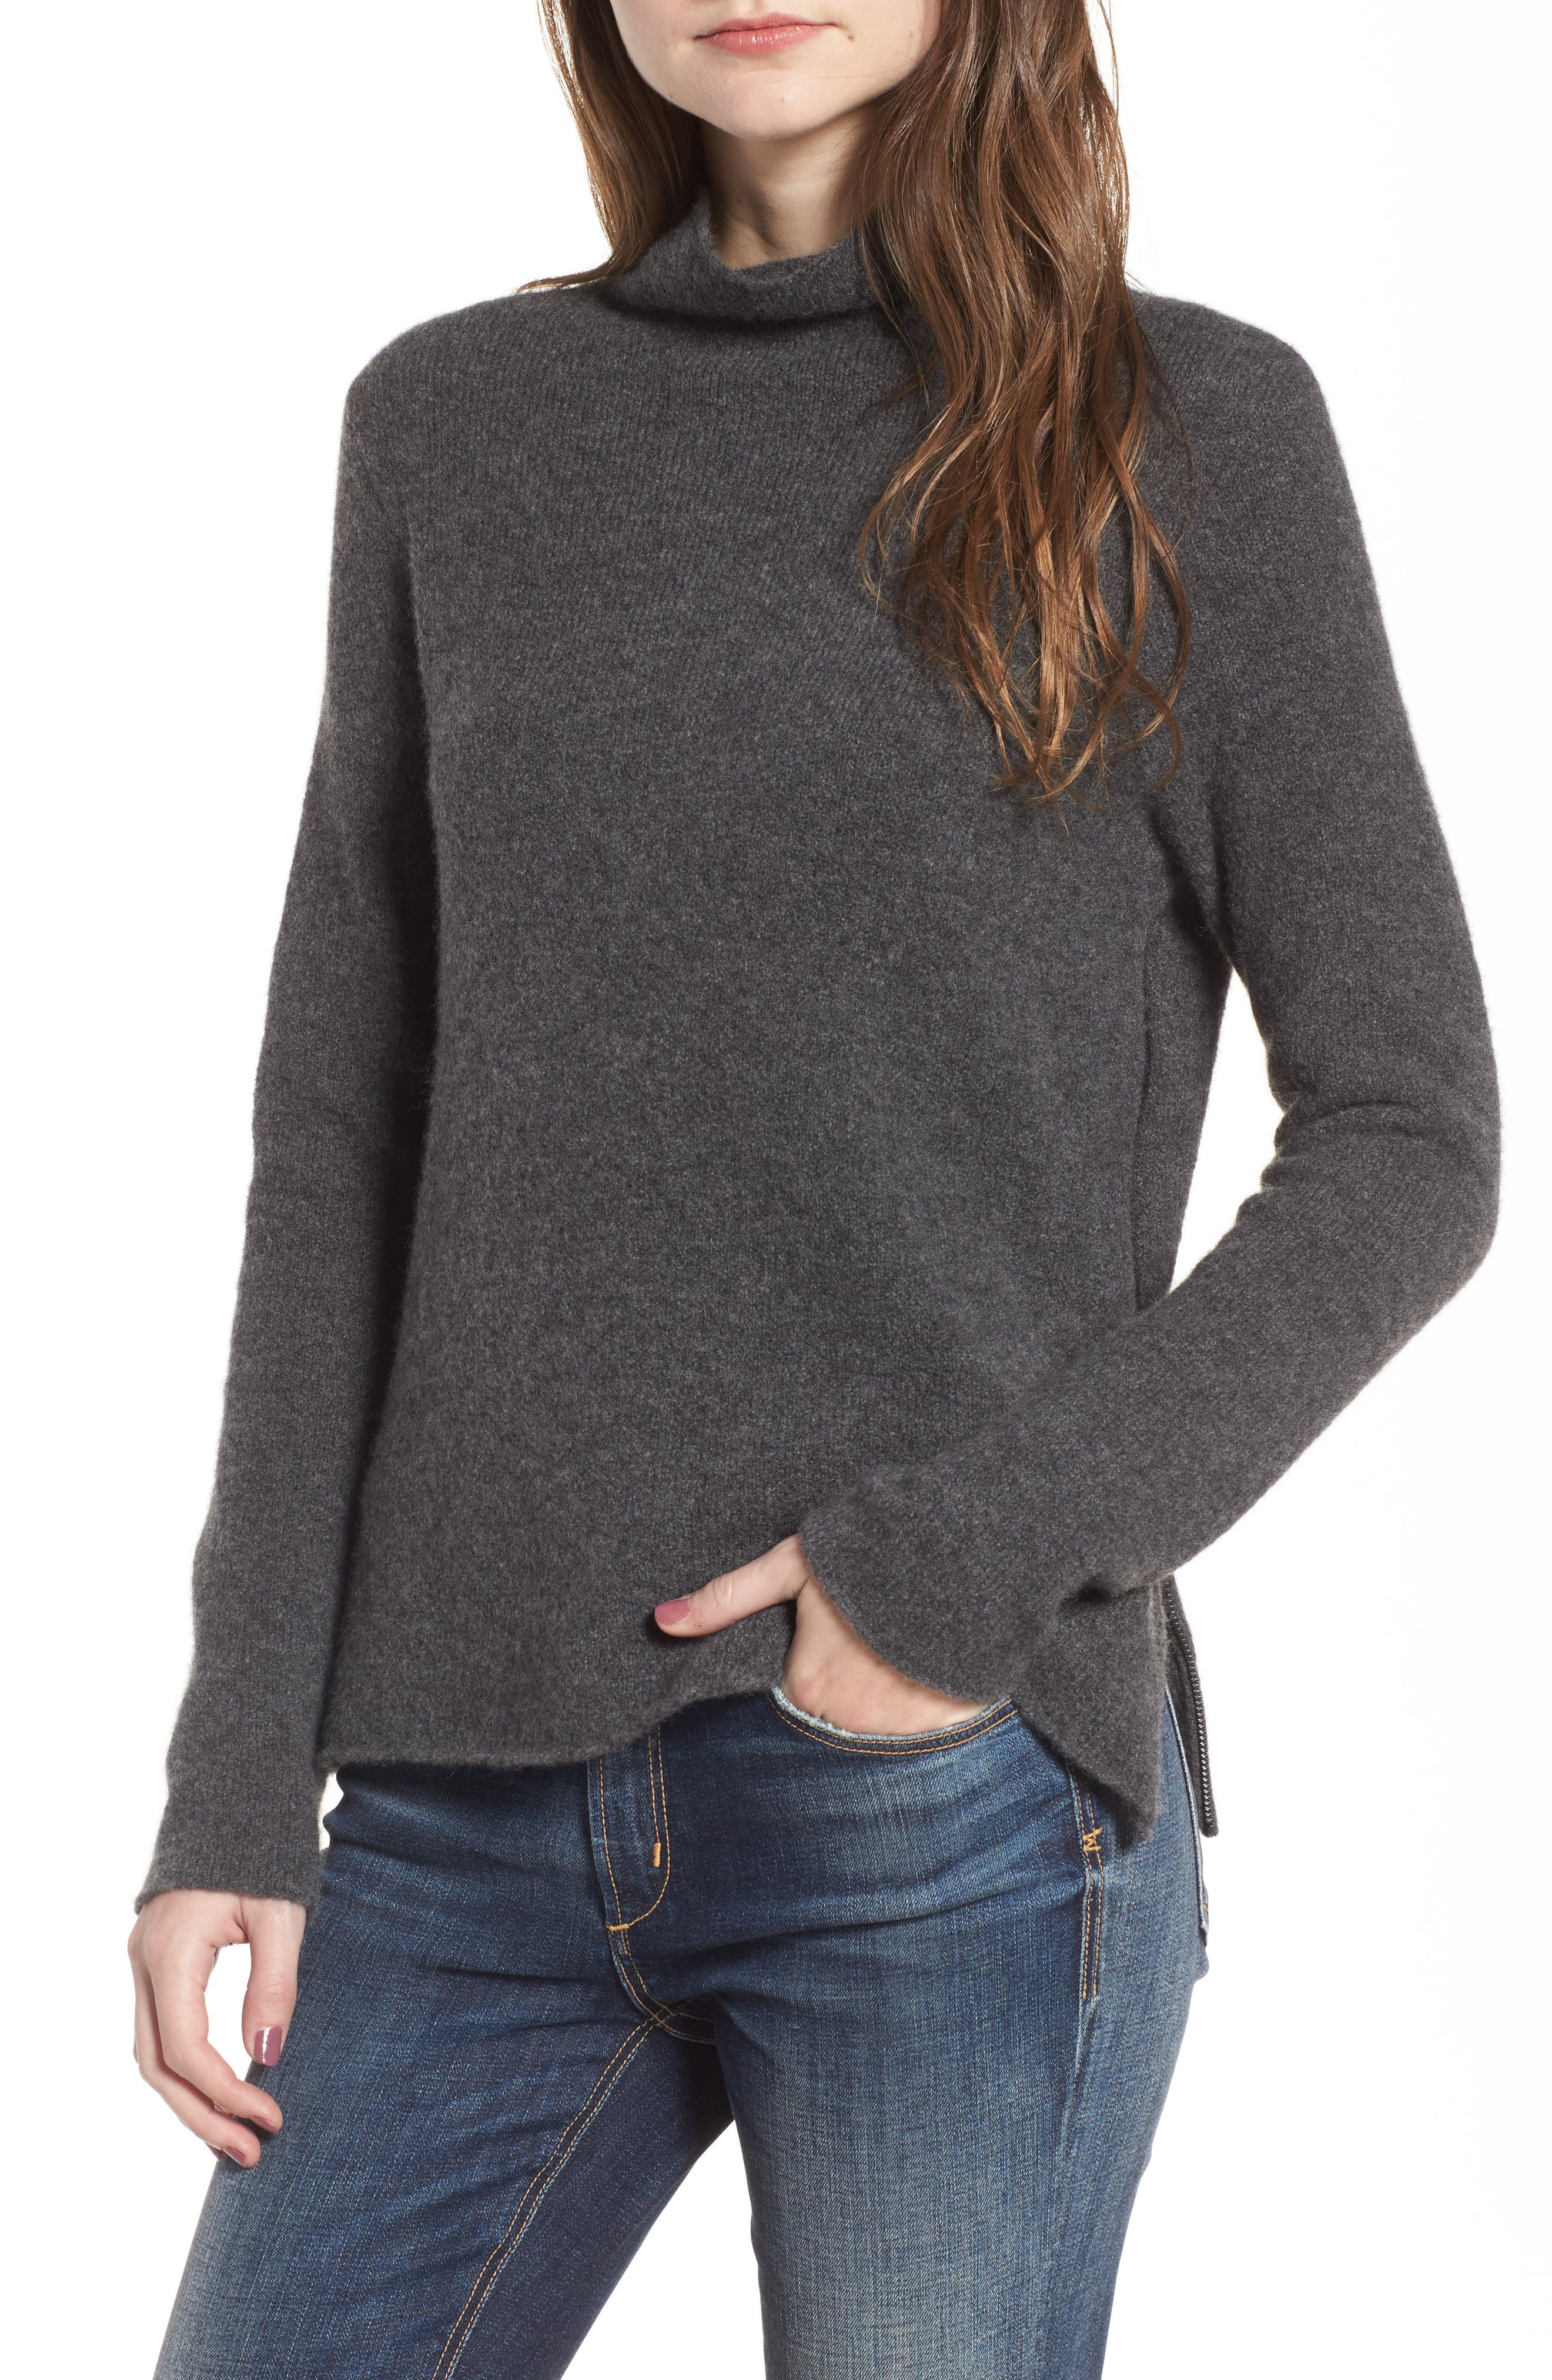 Alternate Image 1 Selected - James Perse Stretch Cashmere Mock Neck Sweater